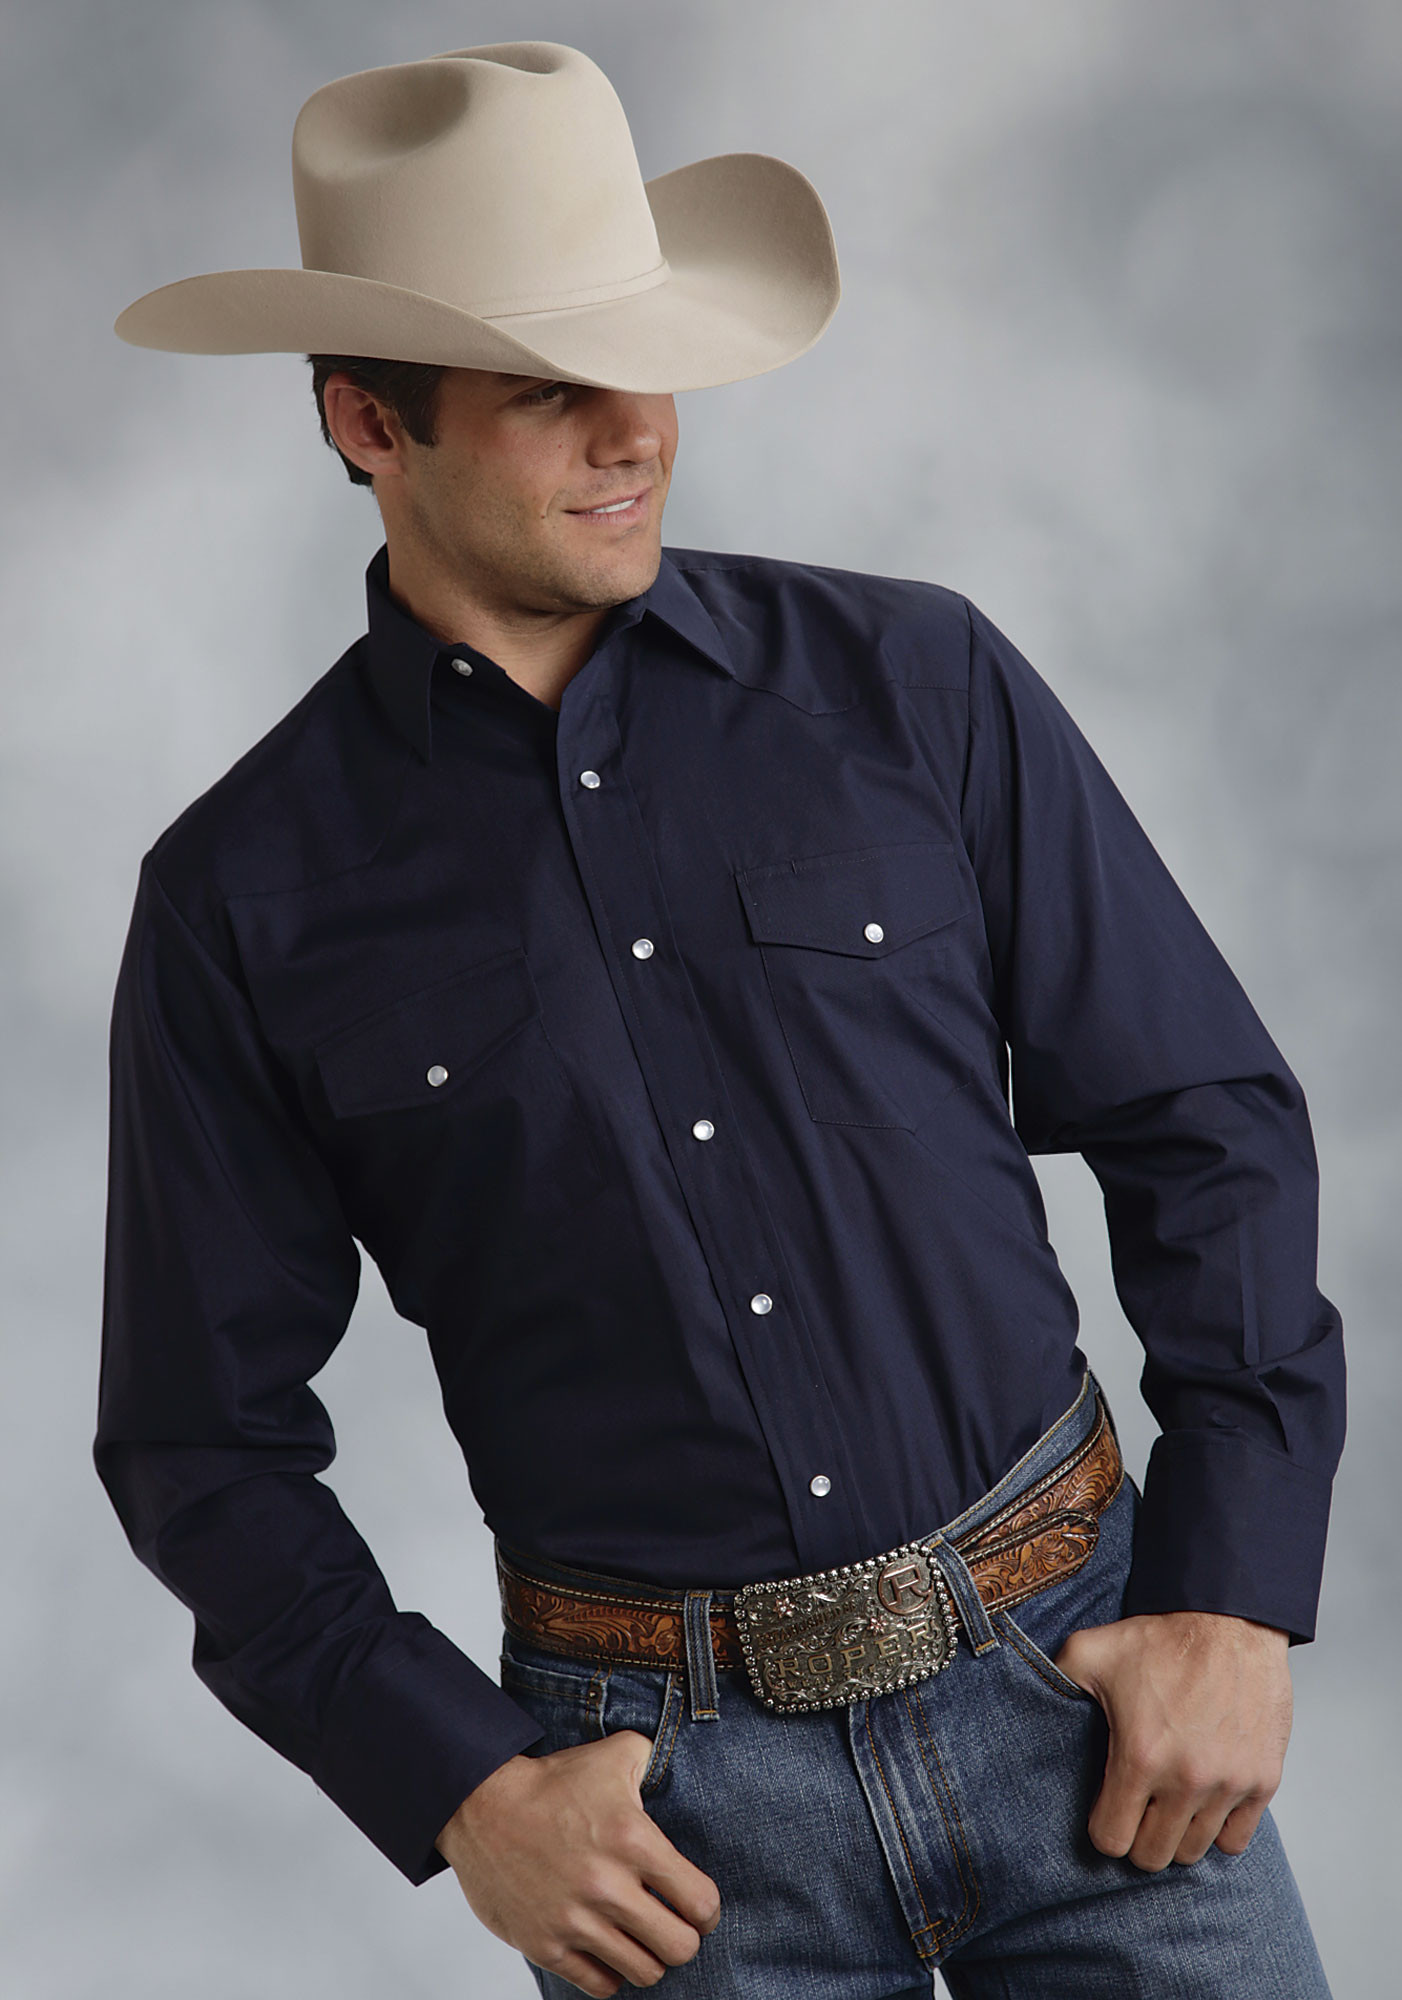 Find great deals on eBay for western pearl snap shirts. Shop with confidence.